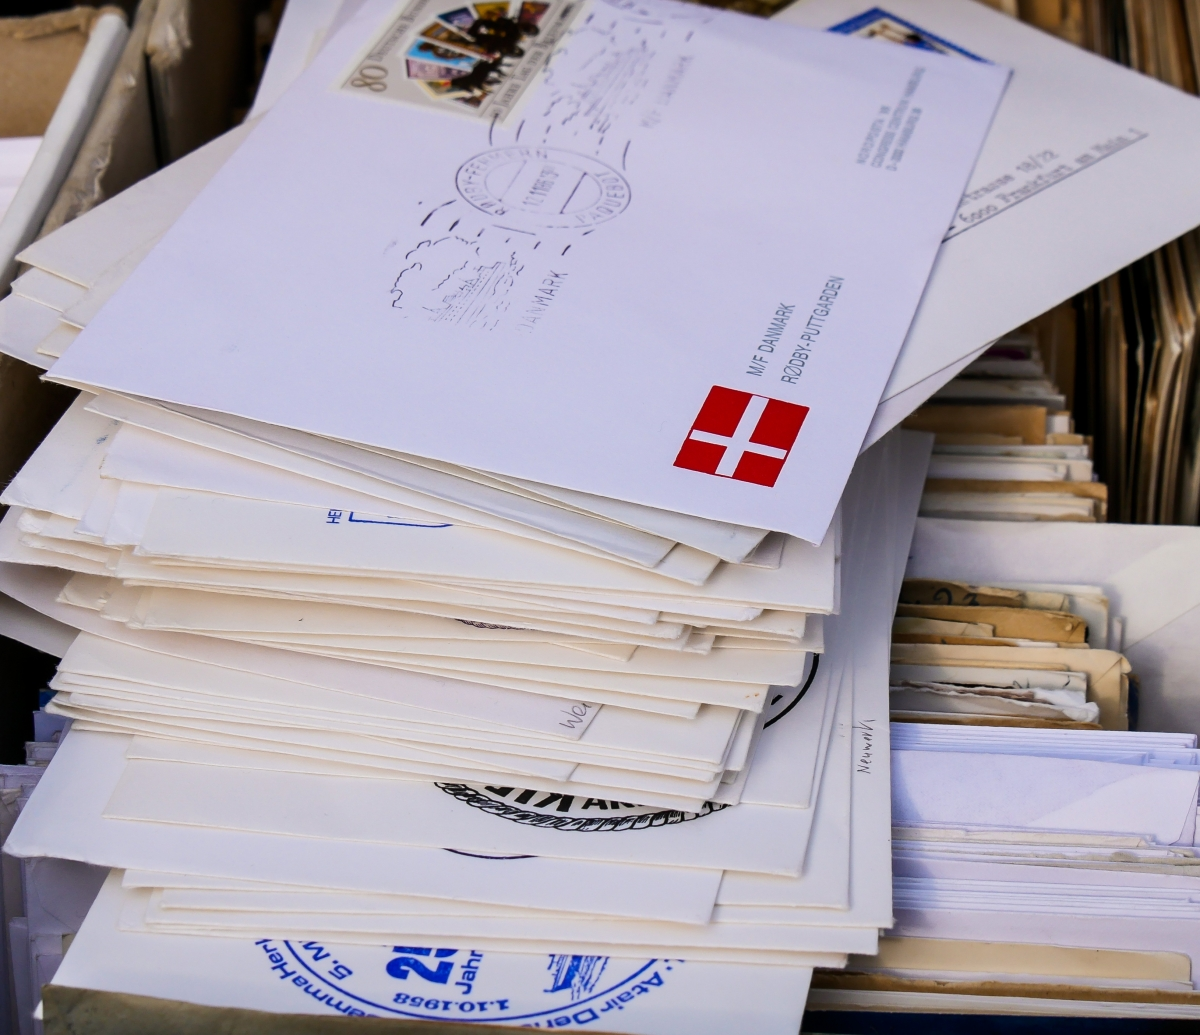 e2c0b280ce Missing or lost packages can be costly for mailrooms if they have to  compensate the recipient.